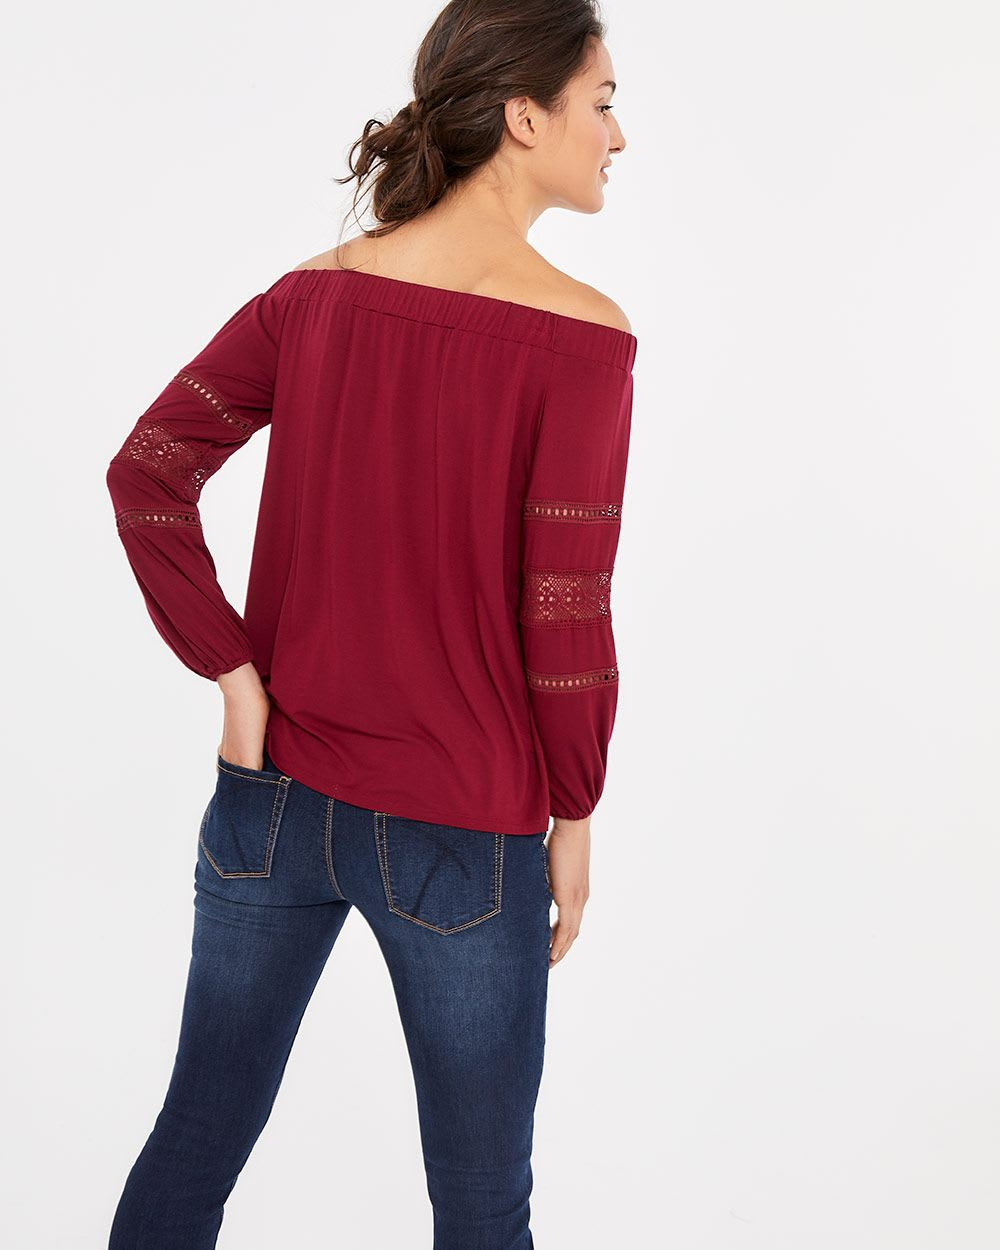 Off-The-Shoulder Mixed Media Top